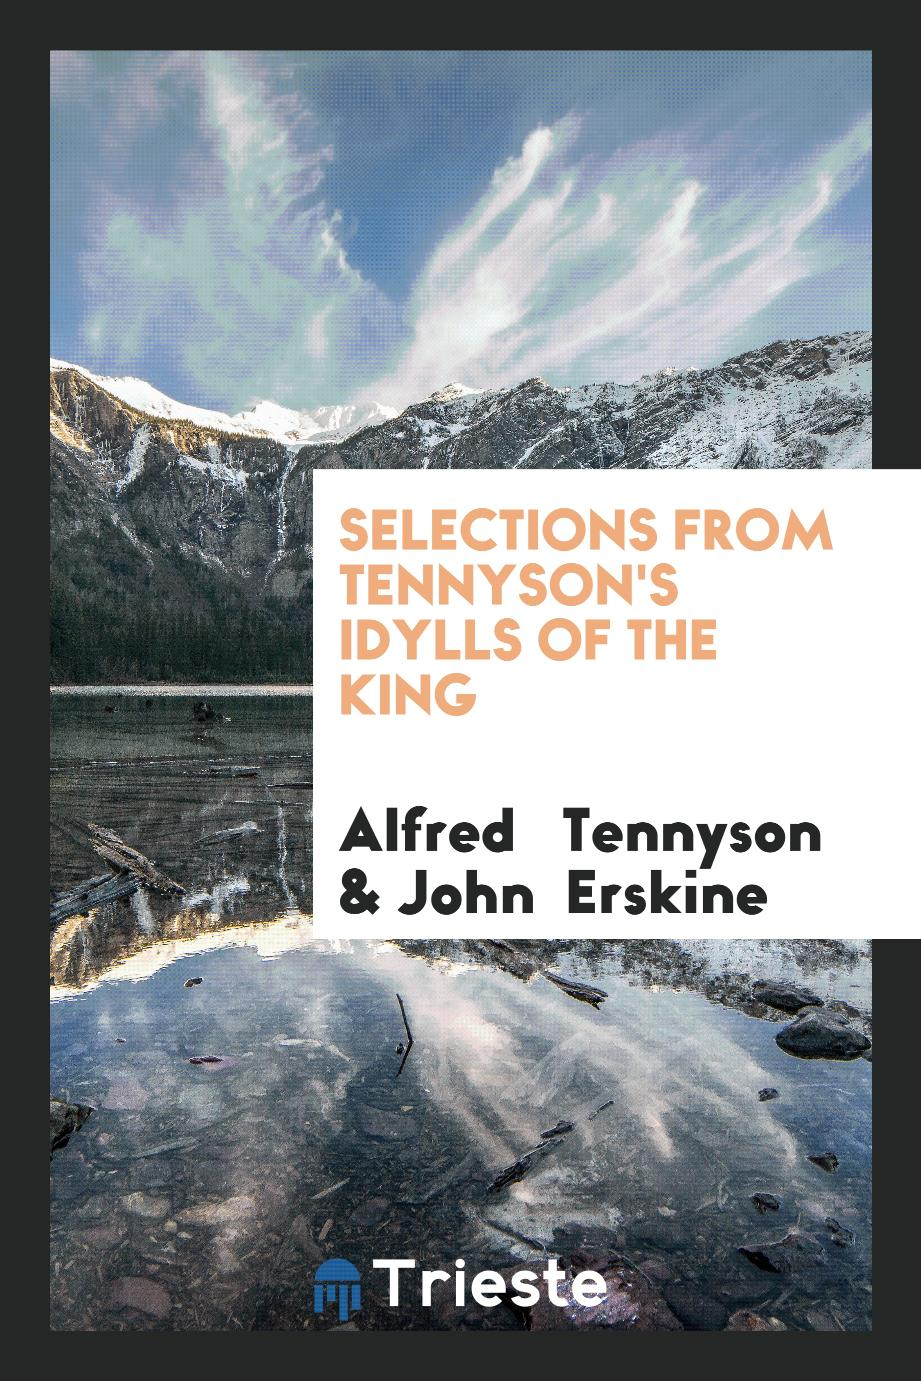 Selections from Tennyson's Idylls of the King